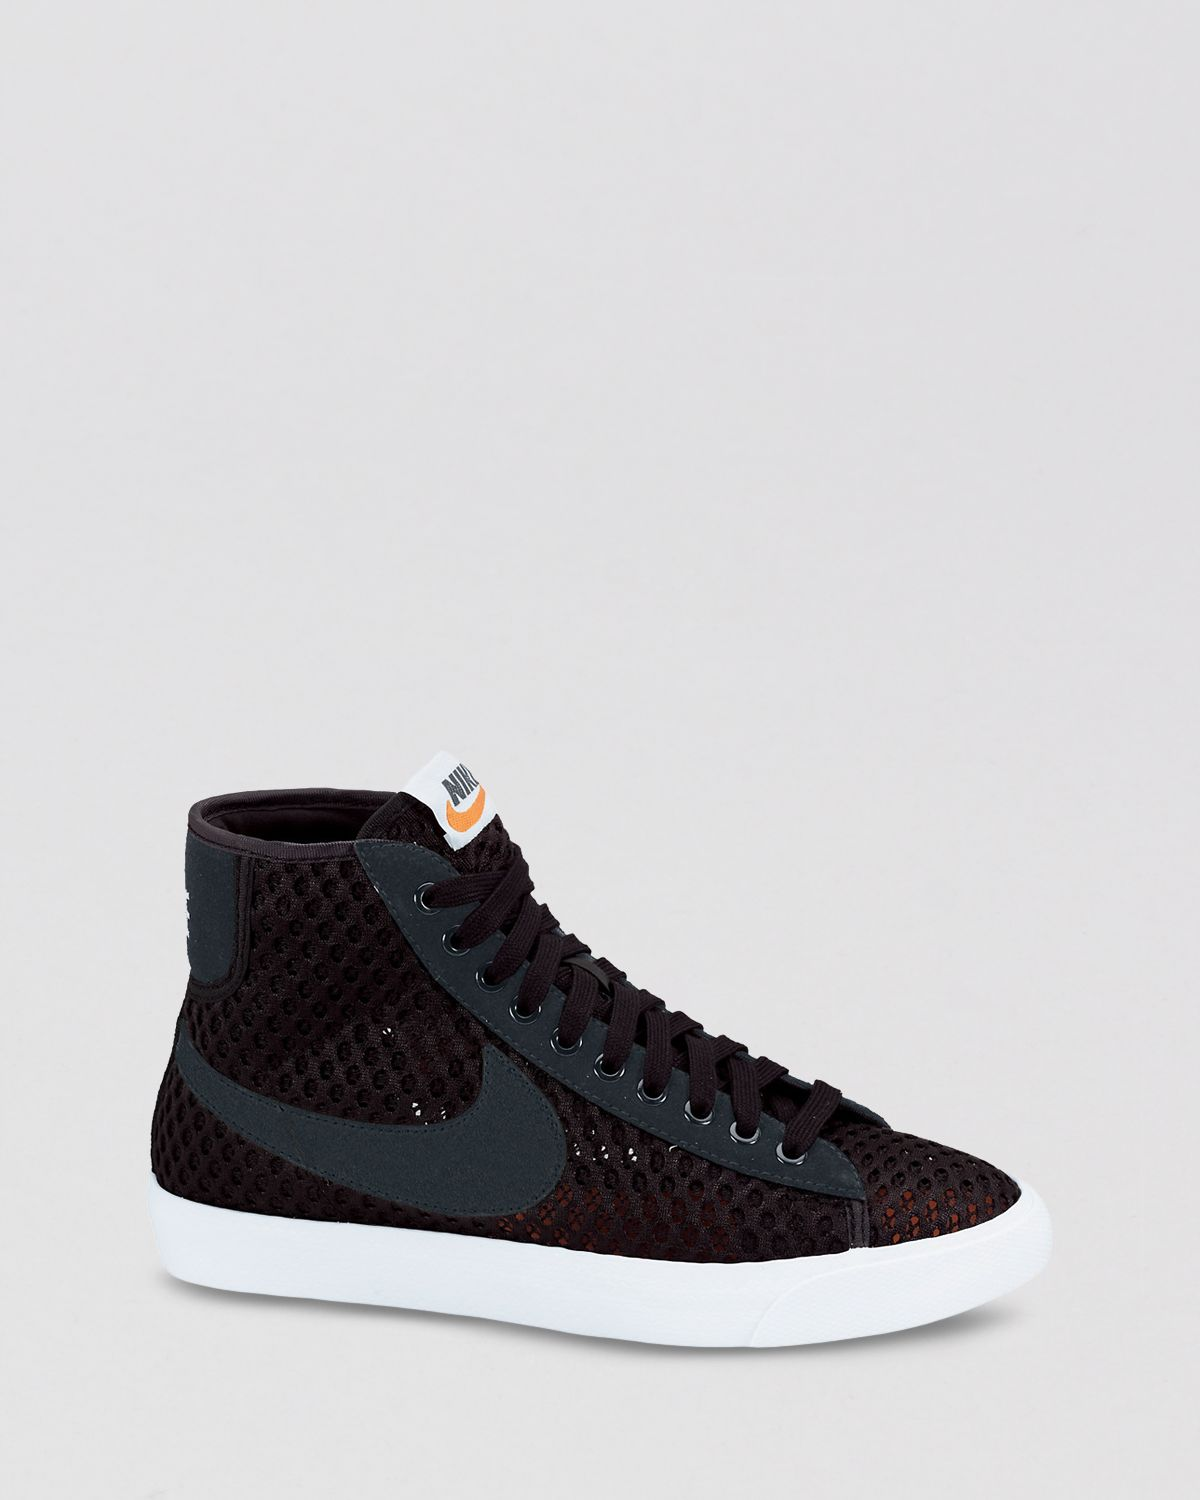 Lyst - Nike Sneakers Lace Up High Top Sneakers Womens ...